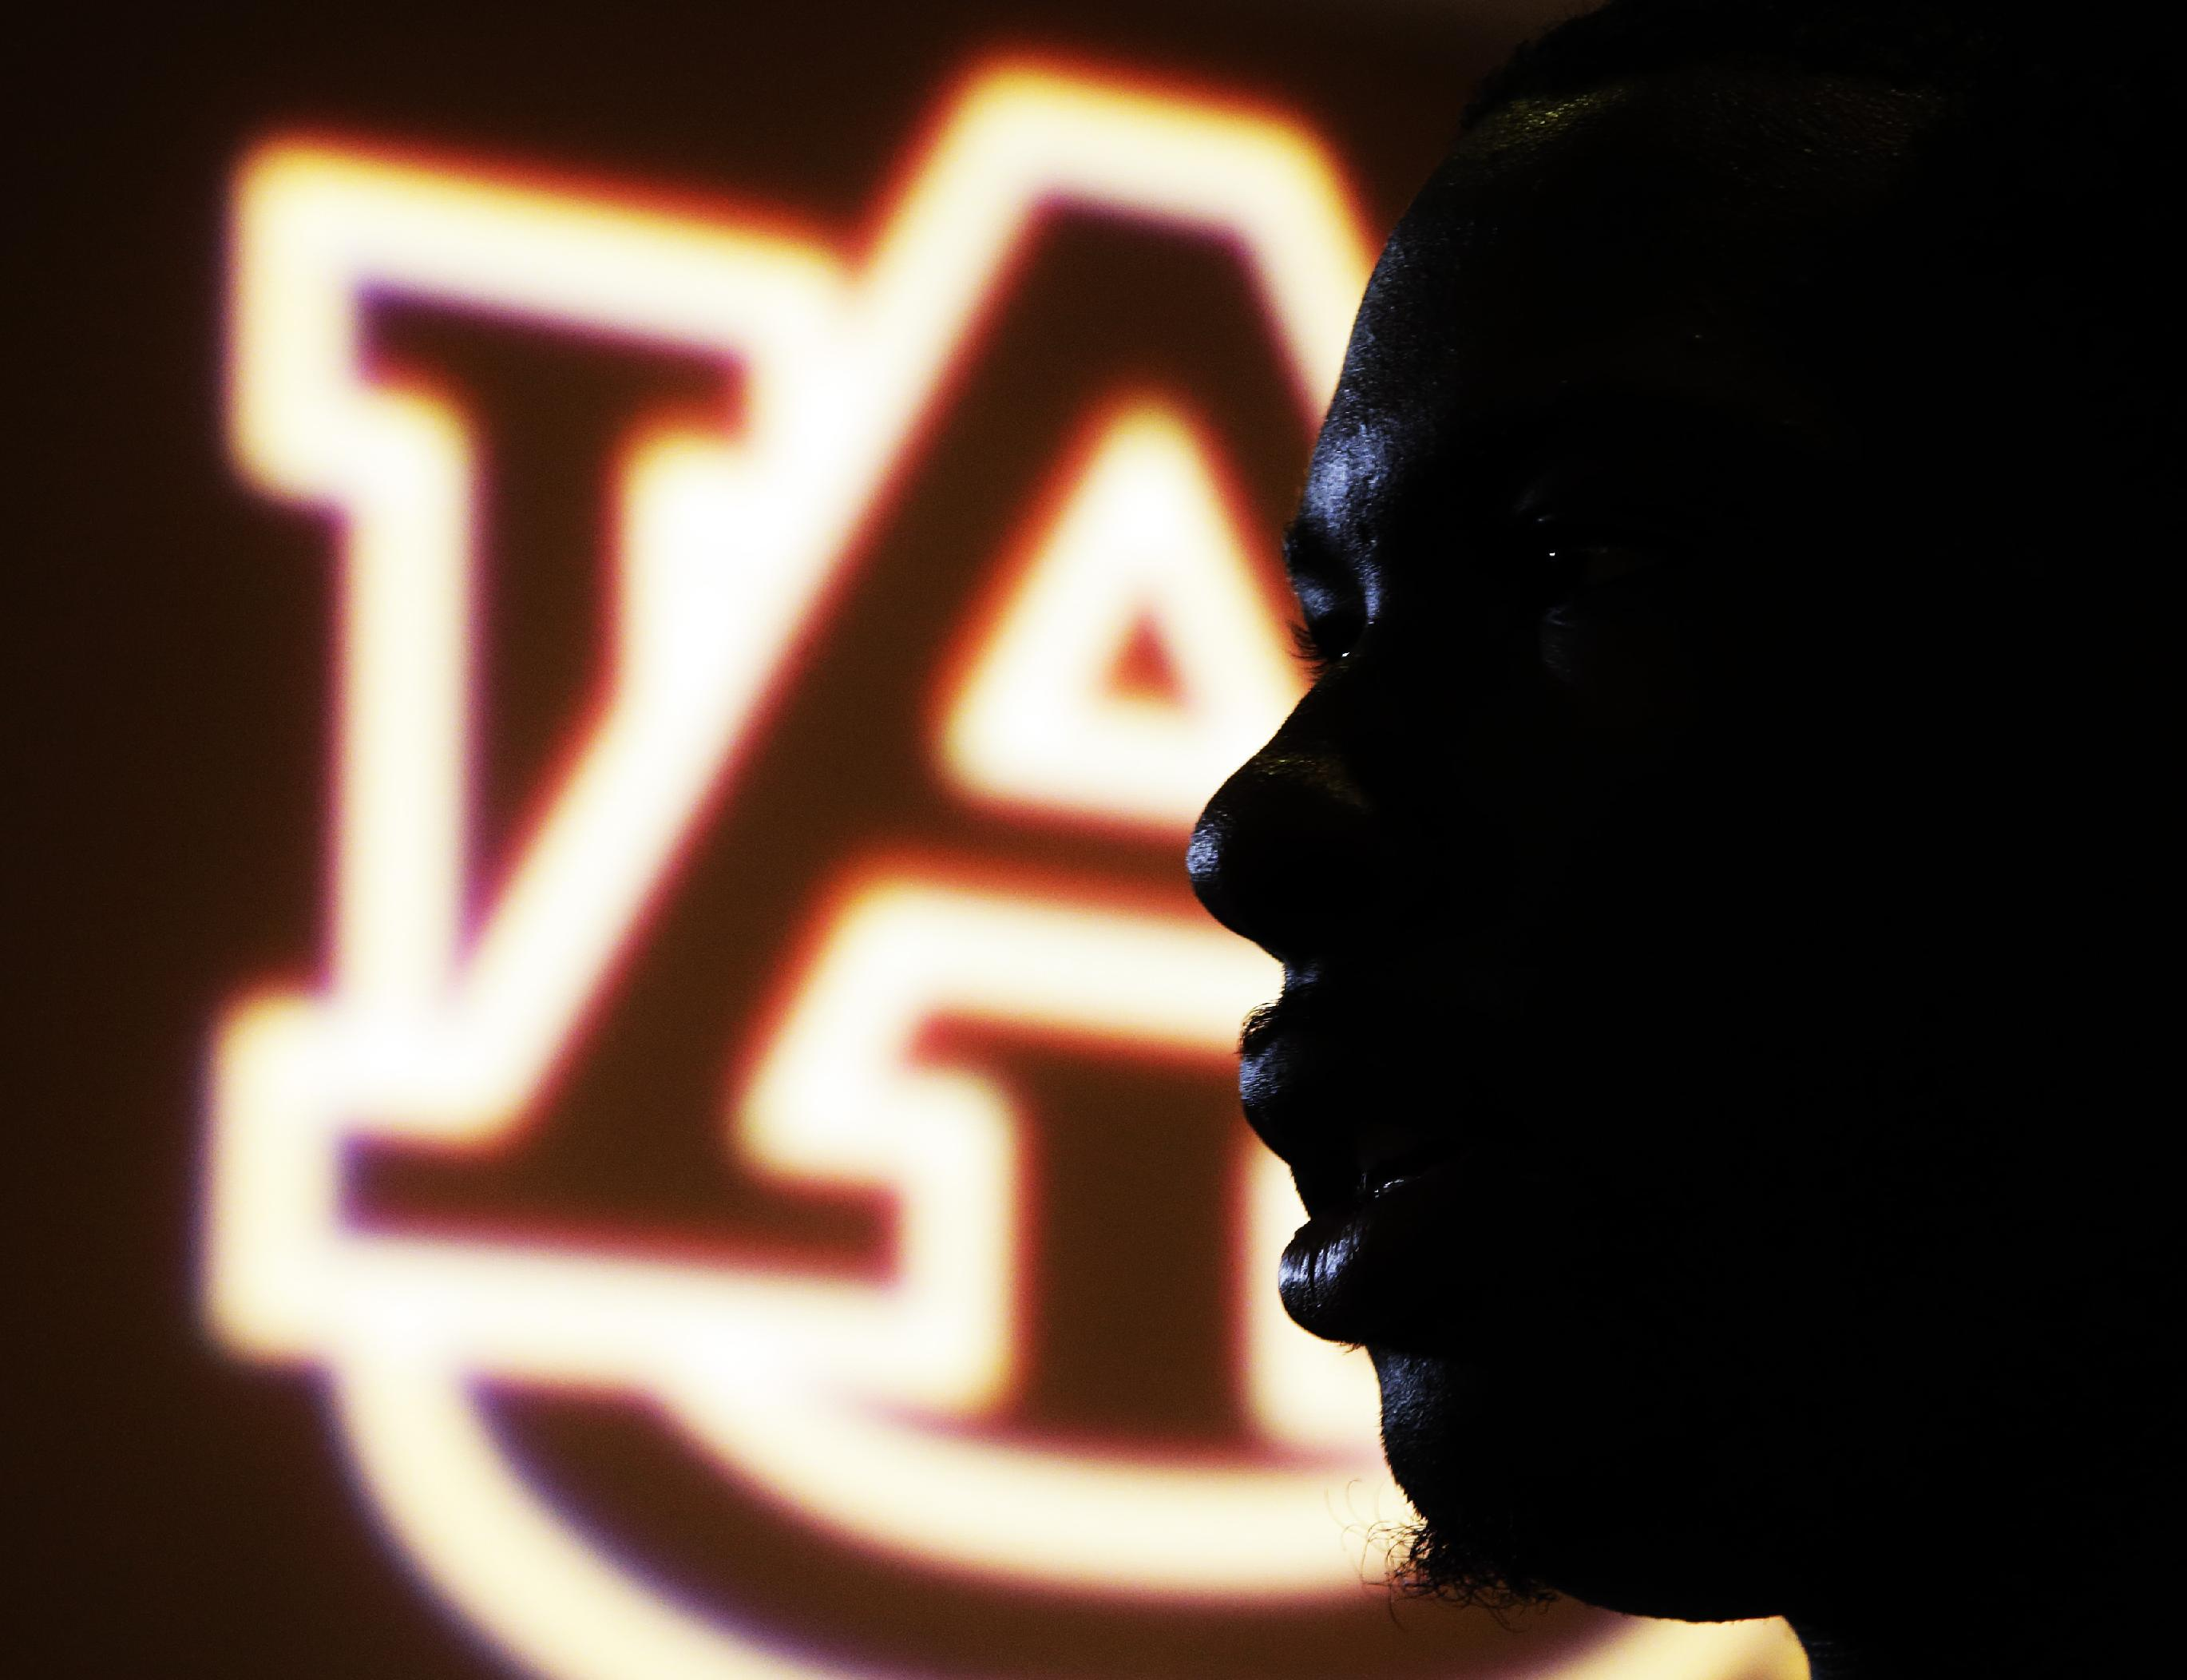 Auburn's Jeremy Johnson answers a question during media day for the NCAA BCS National Championship college football game Saturday, Jan. 4, 2014, in Newport Beach, Calif. Florida State plays Auburn on Monday, Jan. 6, 2014